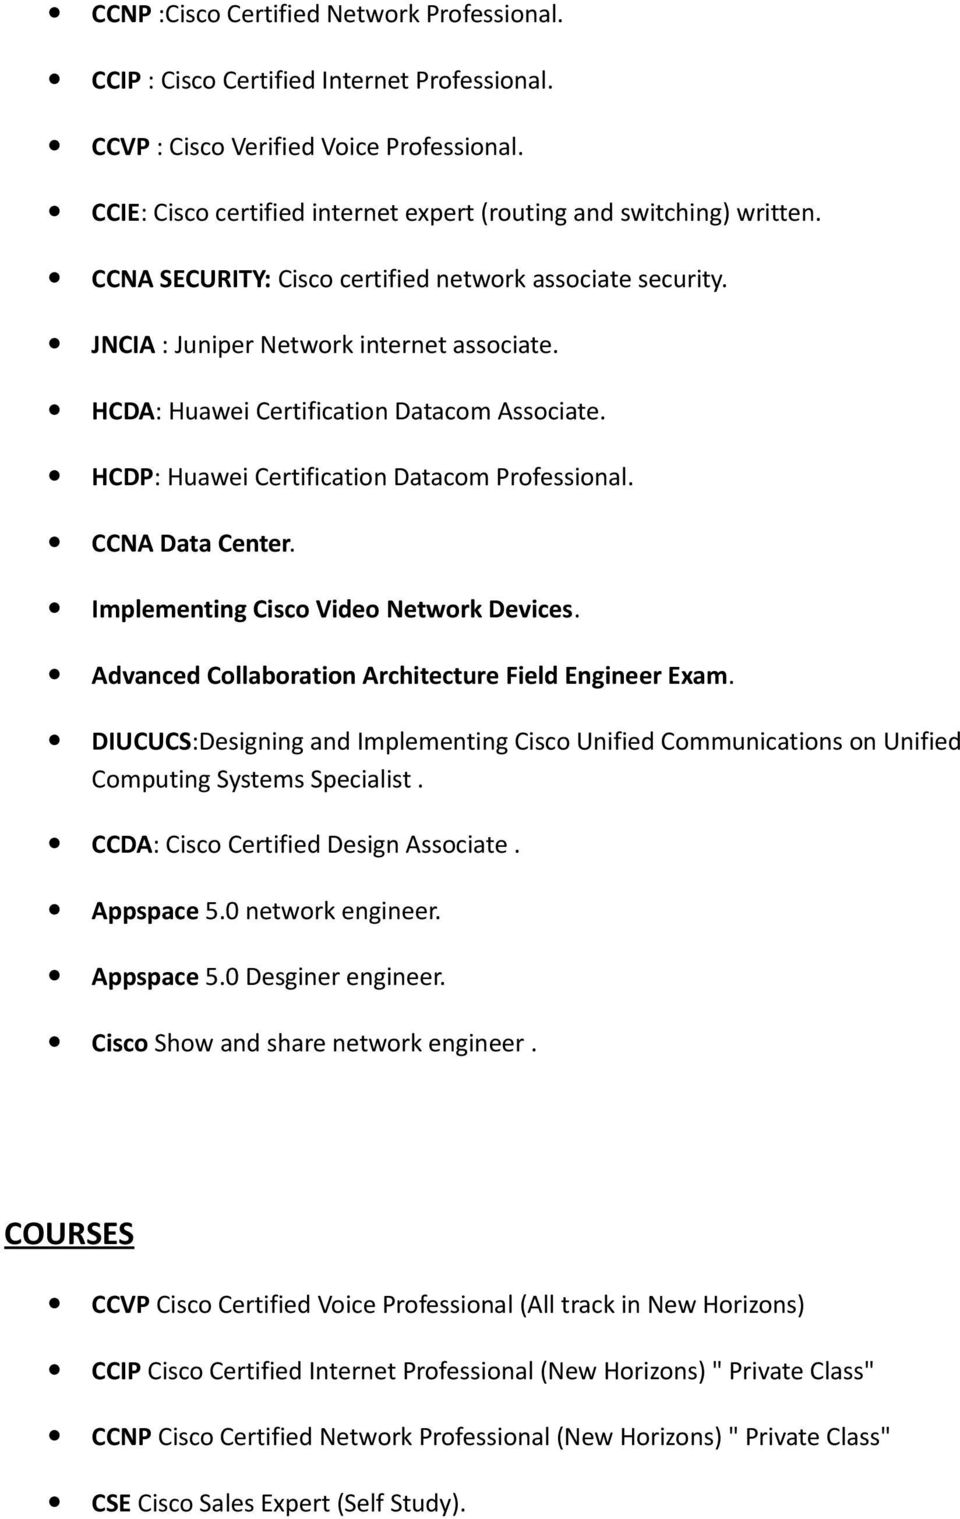 HCDA: Huawei Certification Datacom Associate. HCDP: Huawei Certification Datacom Professional. CCNA Data Center. Implementing Cisco Video Network Devices.